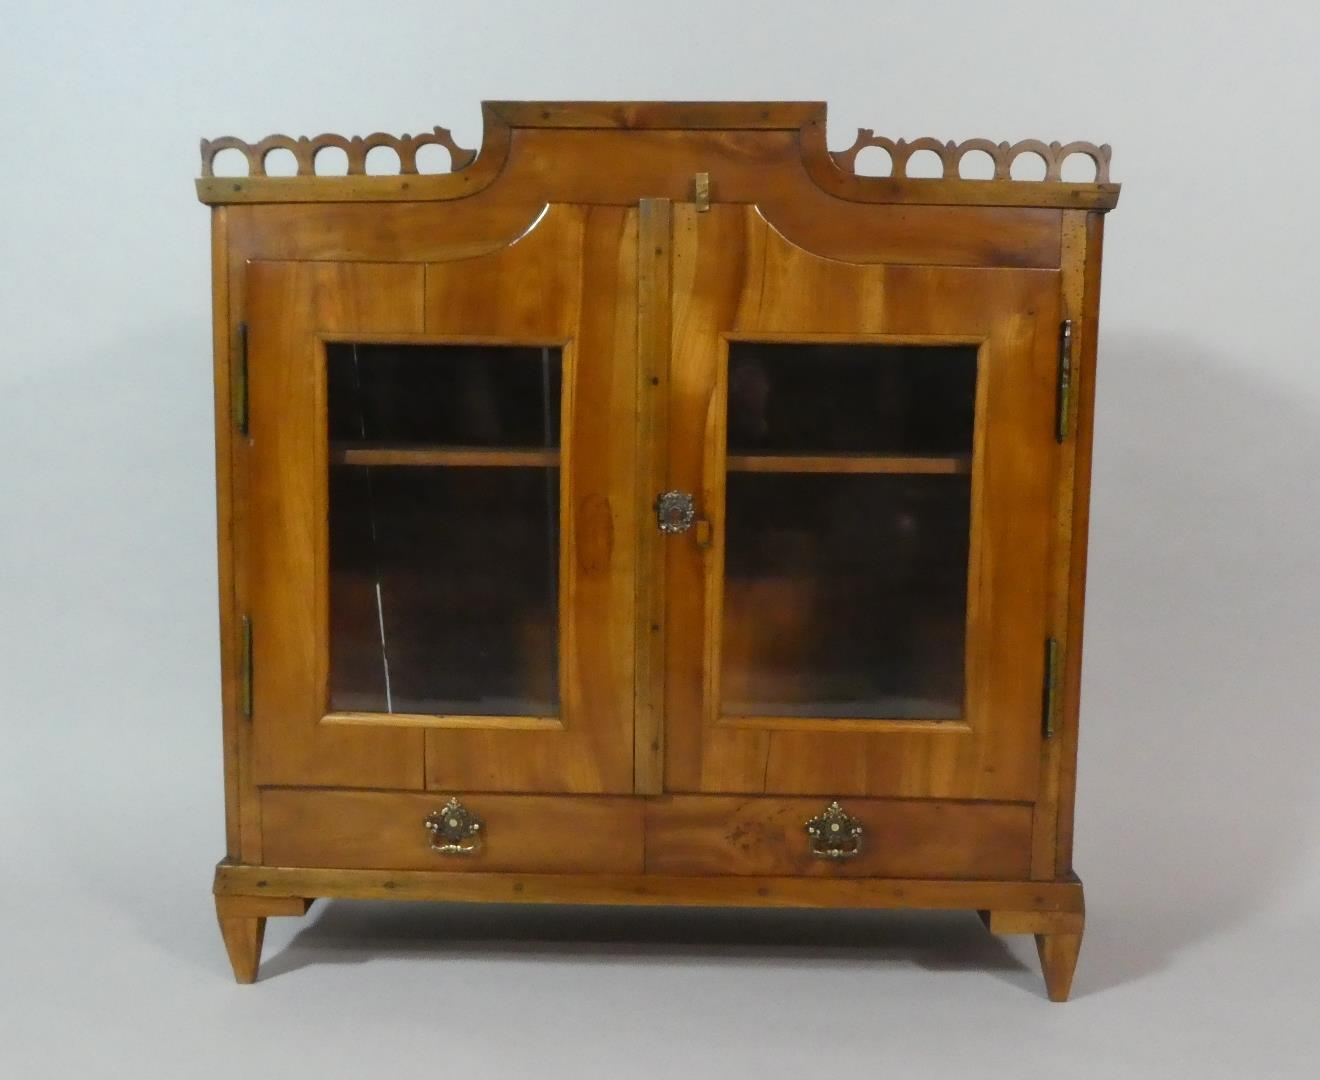 Lot 50 - A 19th Century French Cherrywood Table Top Bookcase, with a Pierced Frieze Over Two Glazed Doors and